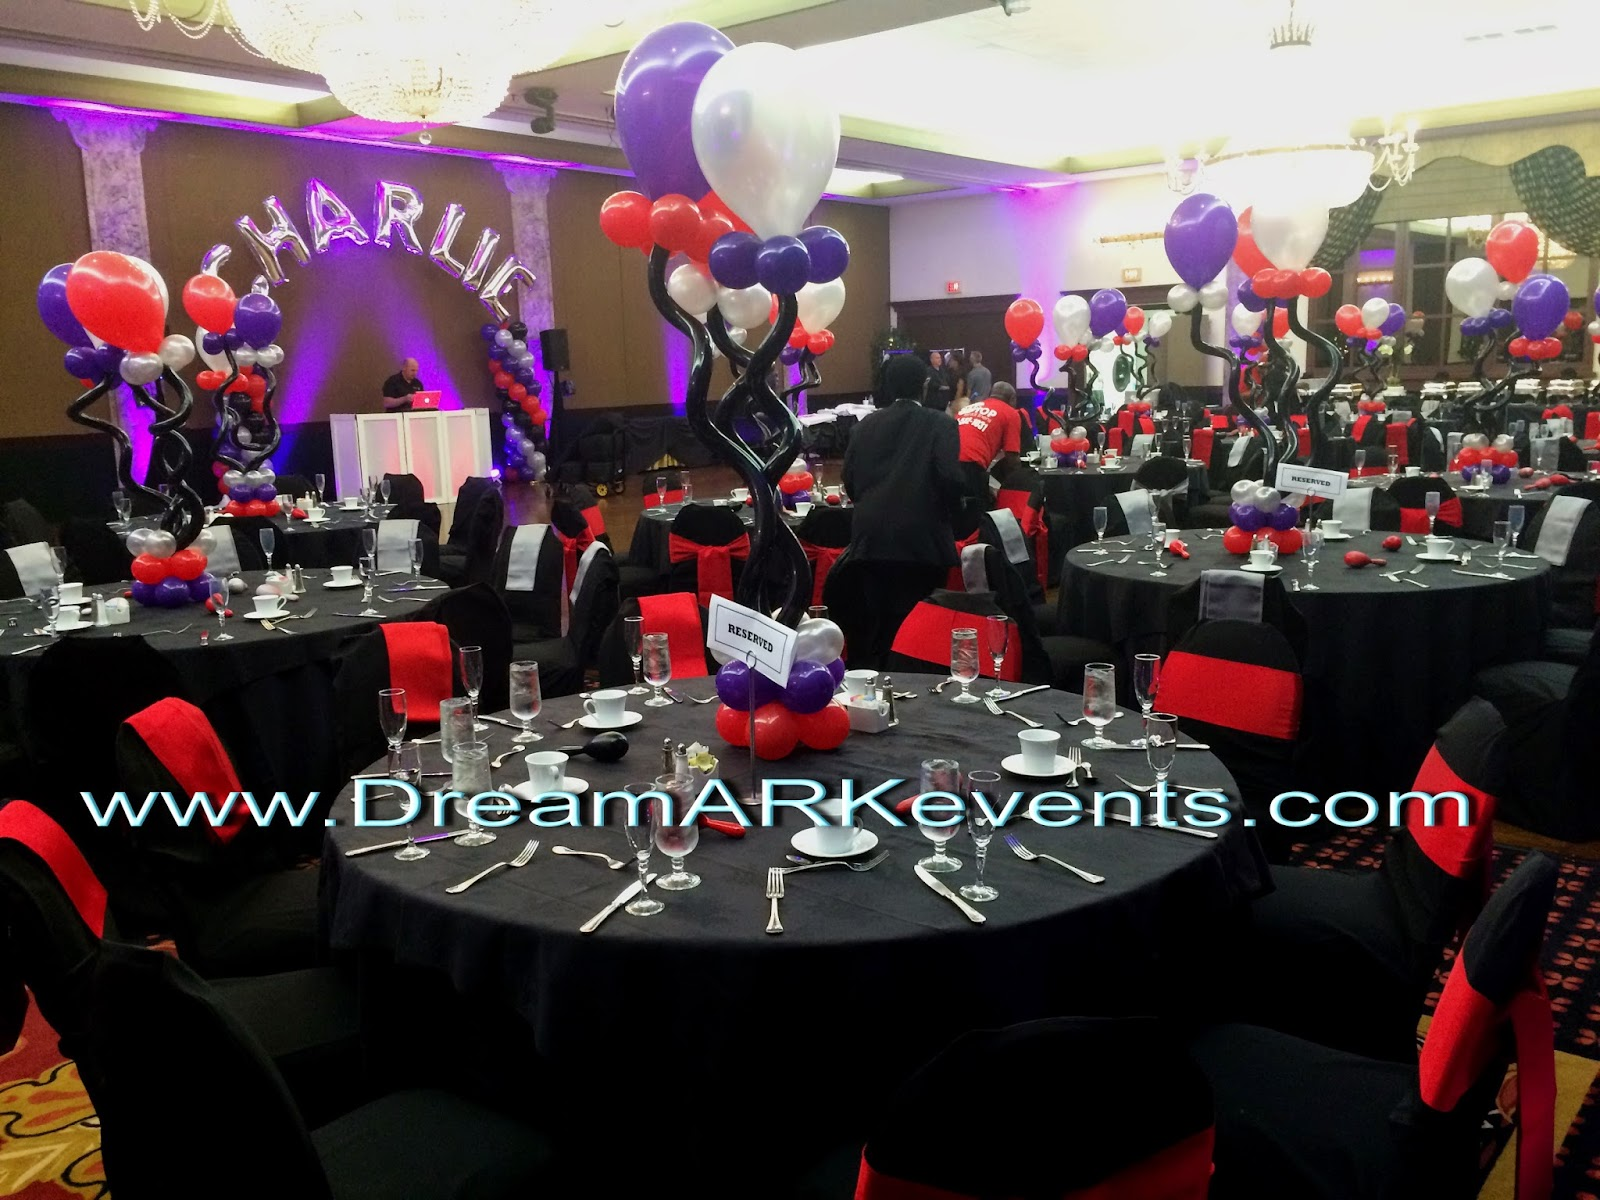 Balloon column with name, centerpiece, dance floor